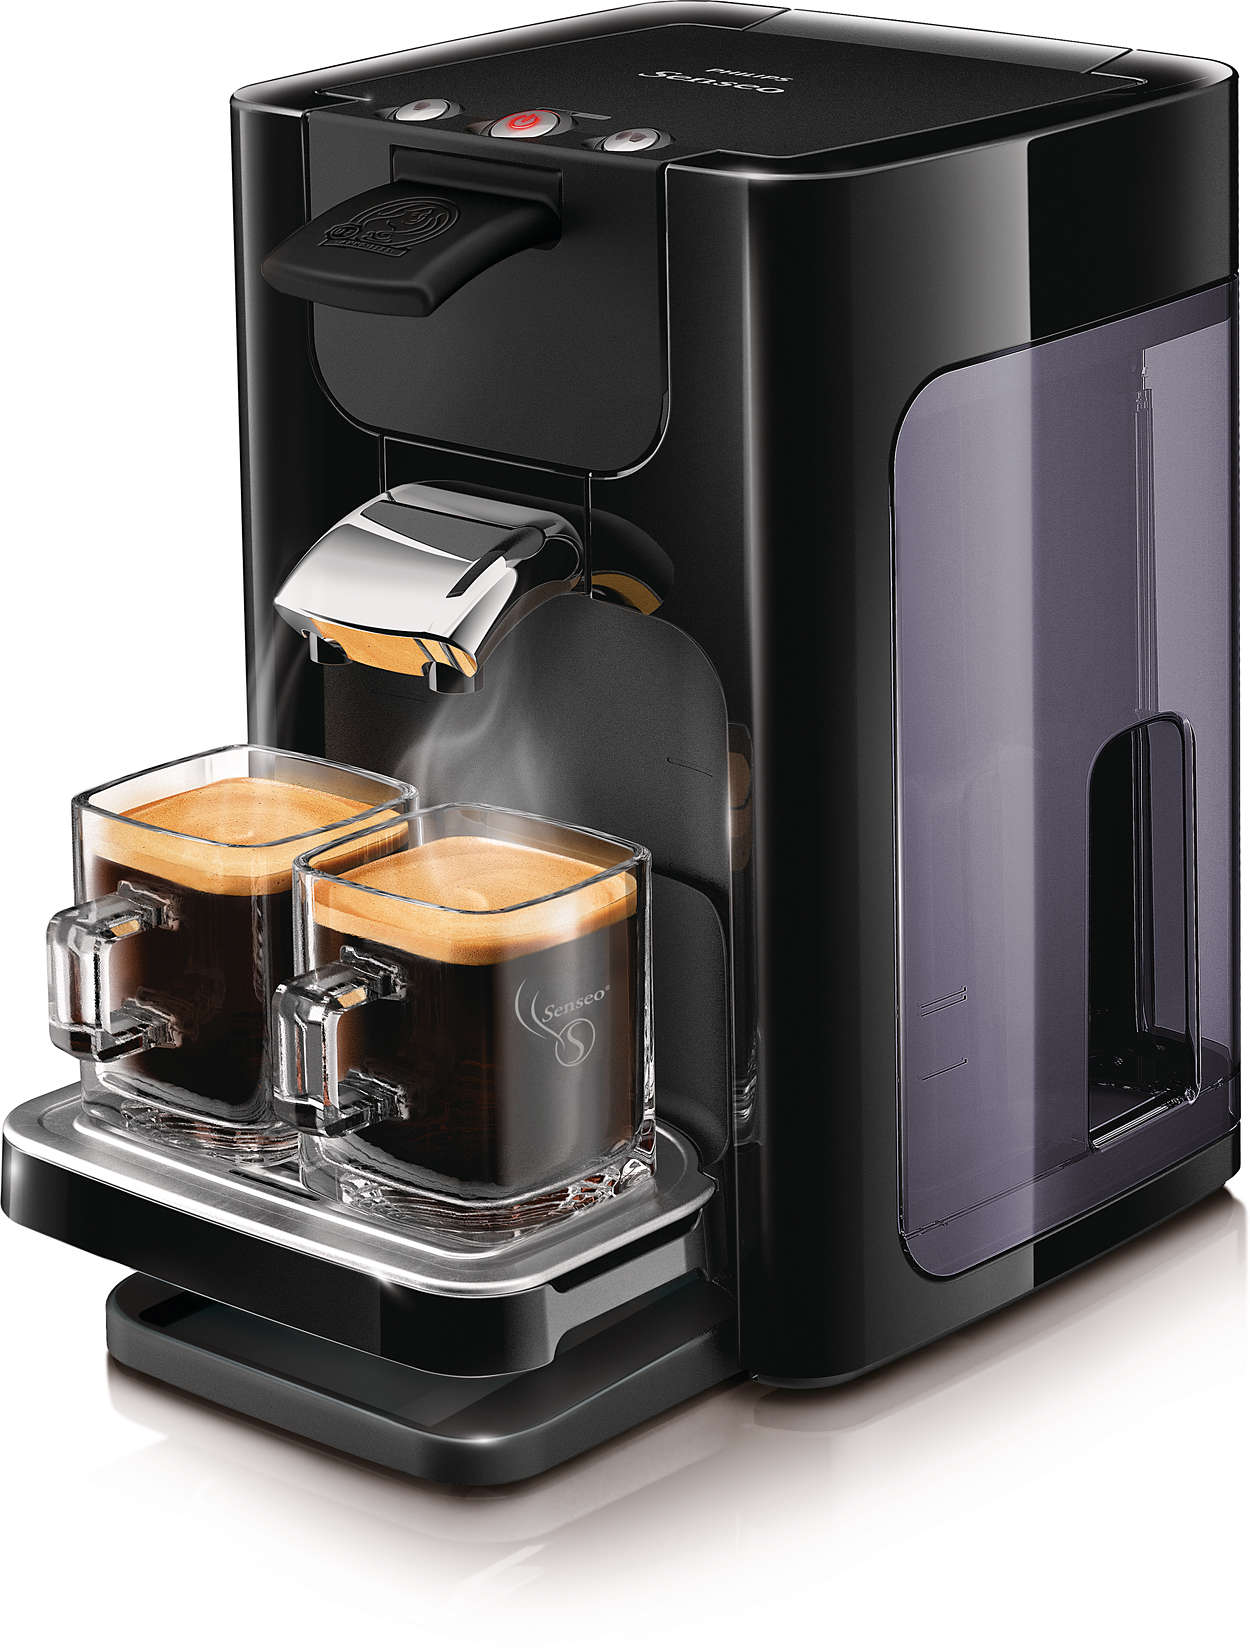 quadrante coffee pod machine hd7860 60 senseo. Black Bedroom Furniture Sets. Home Design Ideas